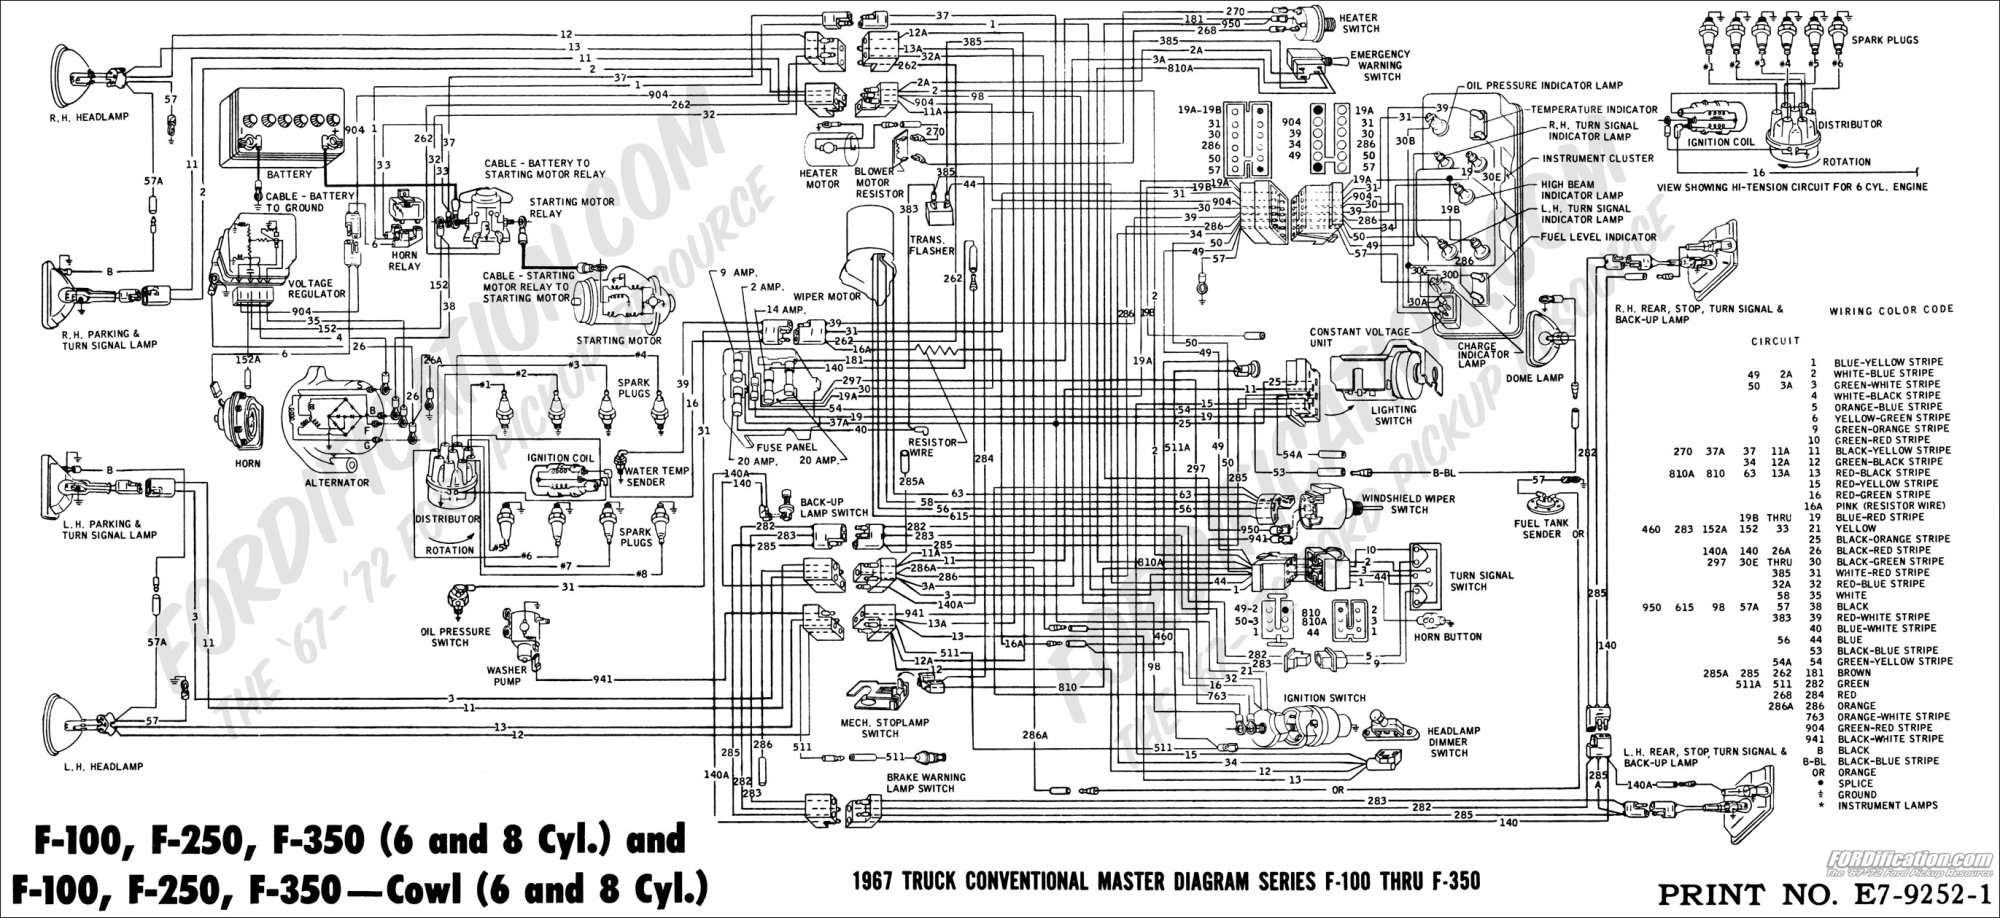 hight resolution of ford f 150 wiring diagram wiring diagram name wiring diagram ford f150 radio ford f 150